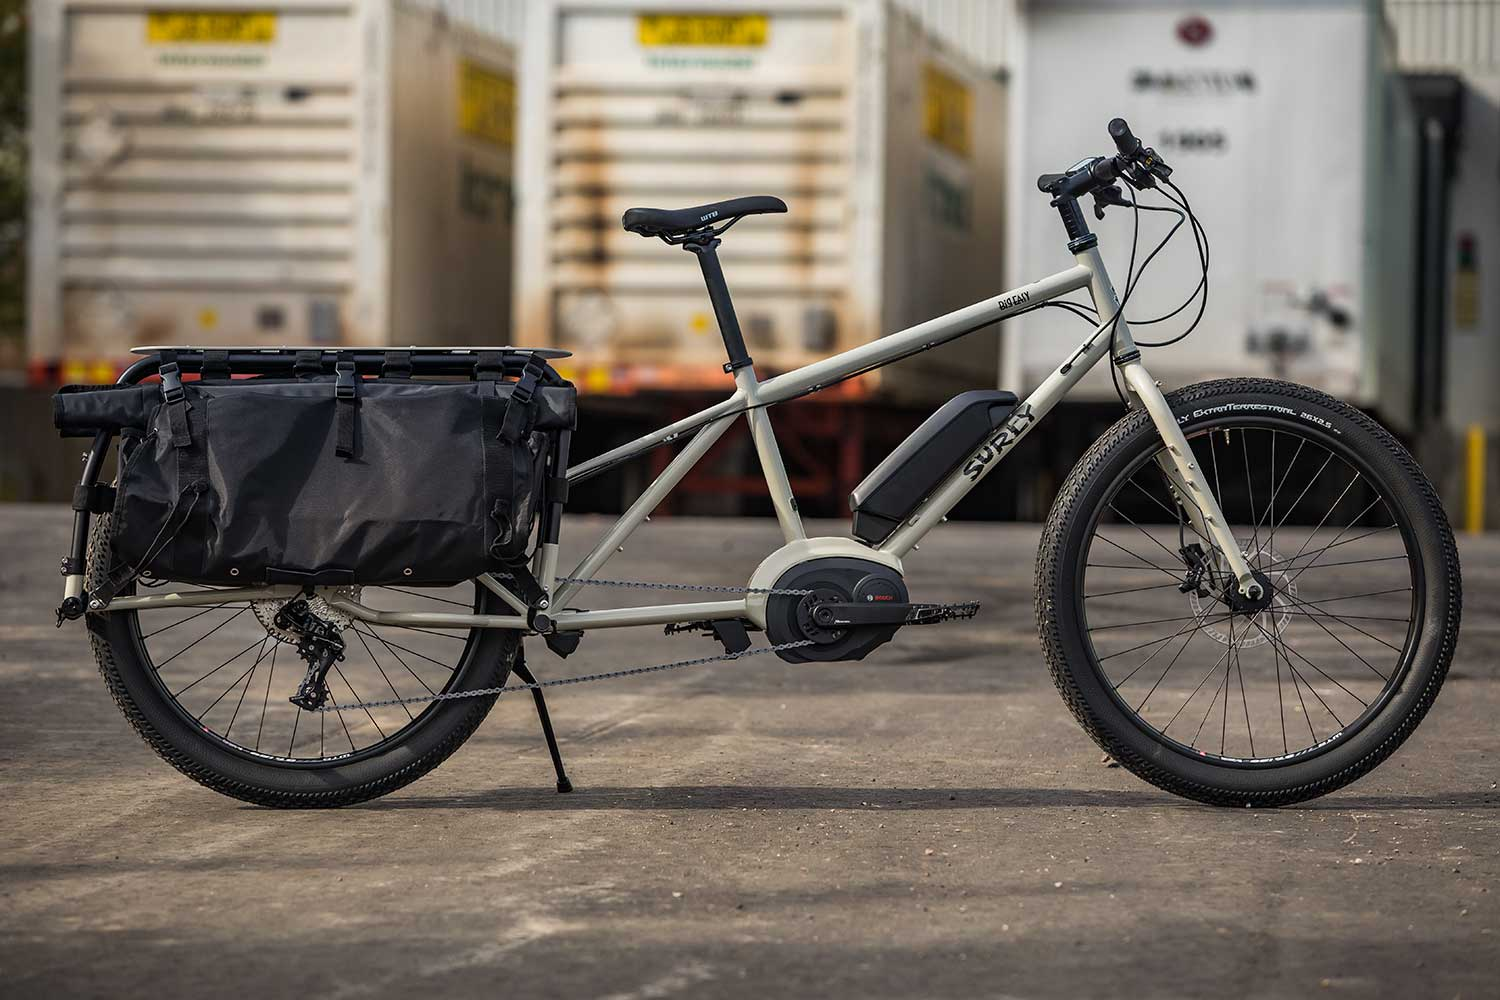 Surly Big Easy electric cargo bike, side view